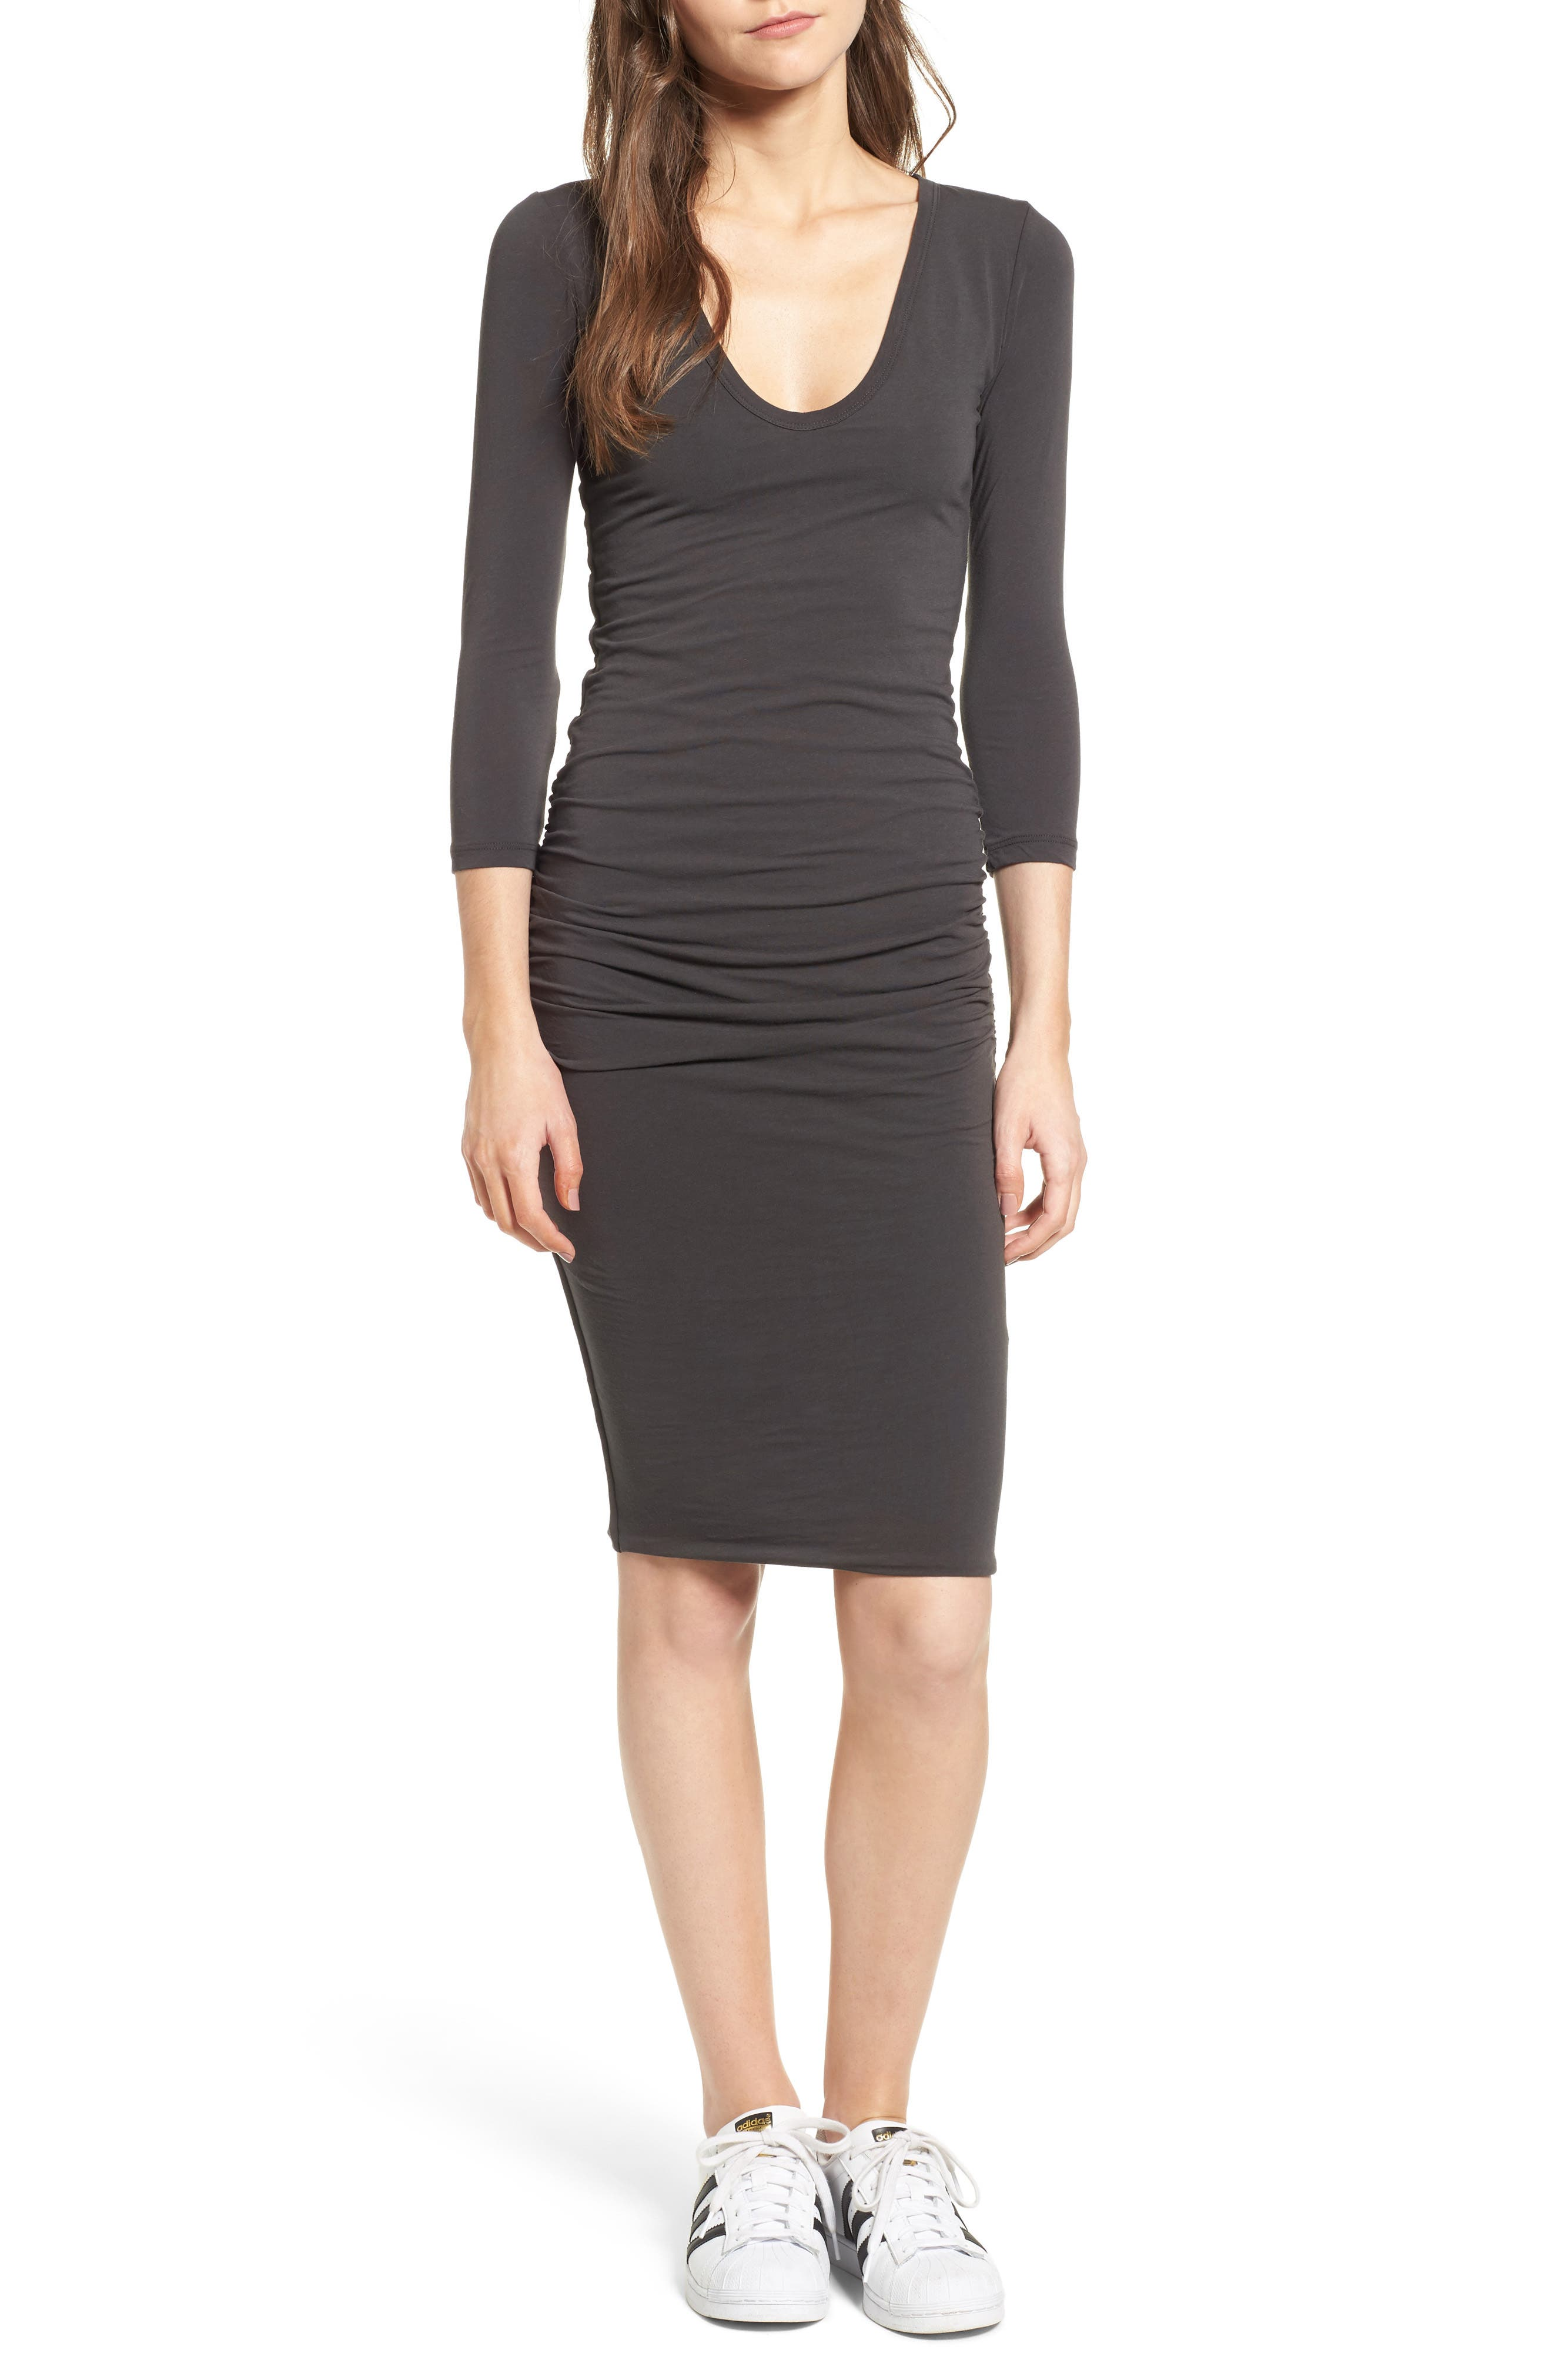 Alternate Image 1 Selected - James Perse V-Neck Ruched Dress